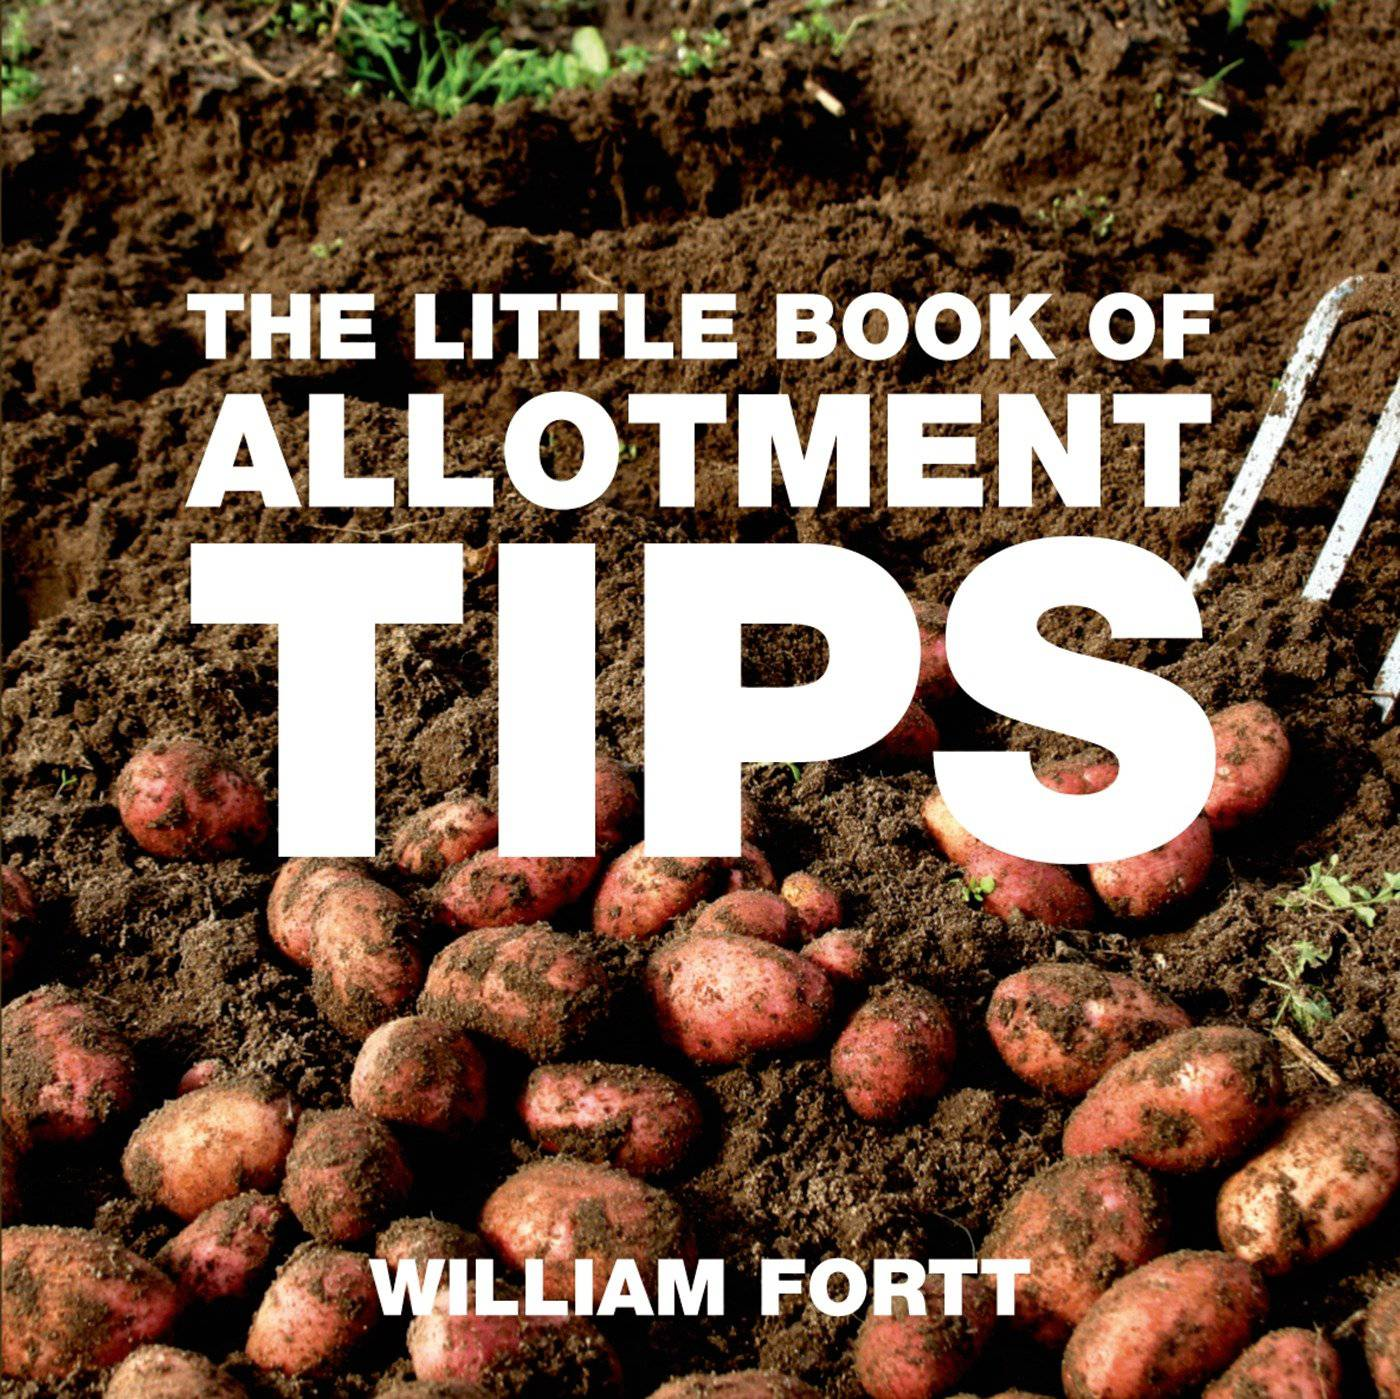 The little book of allotment tips by William Fortt